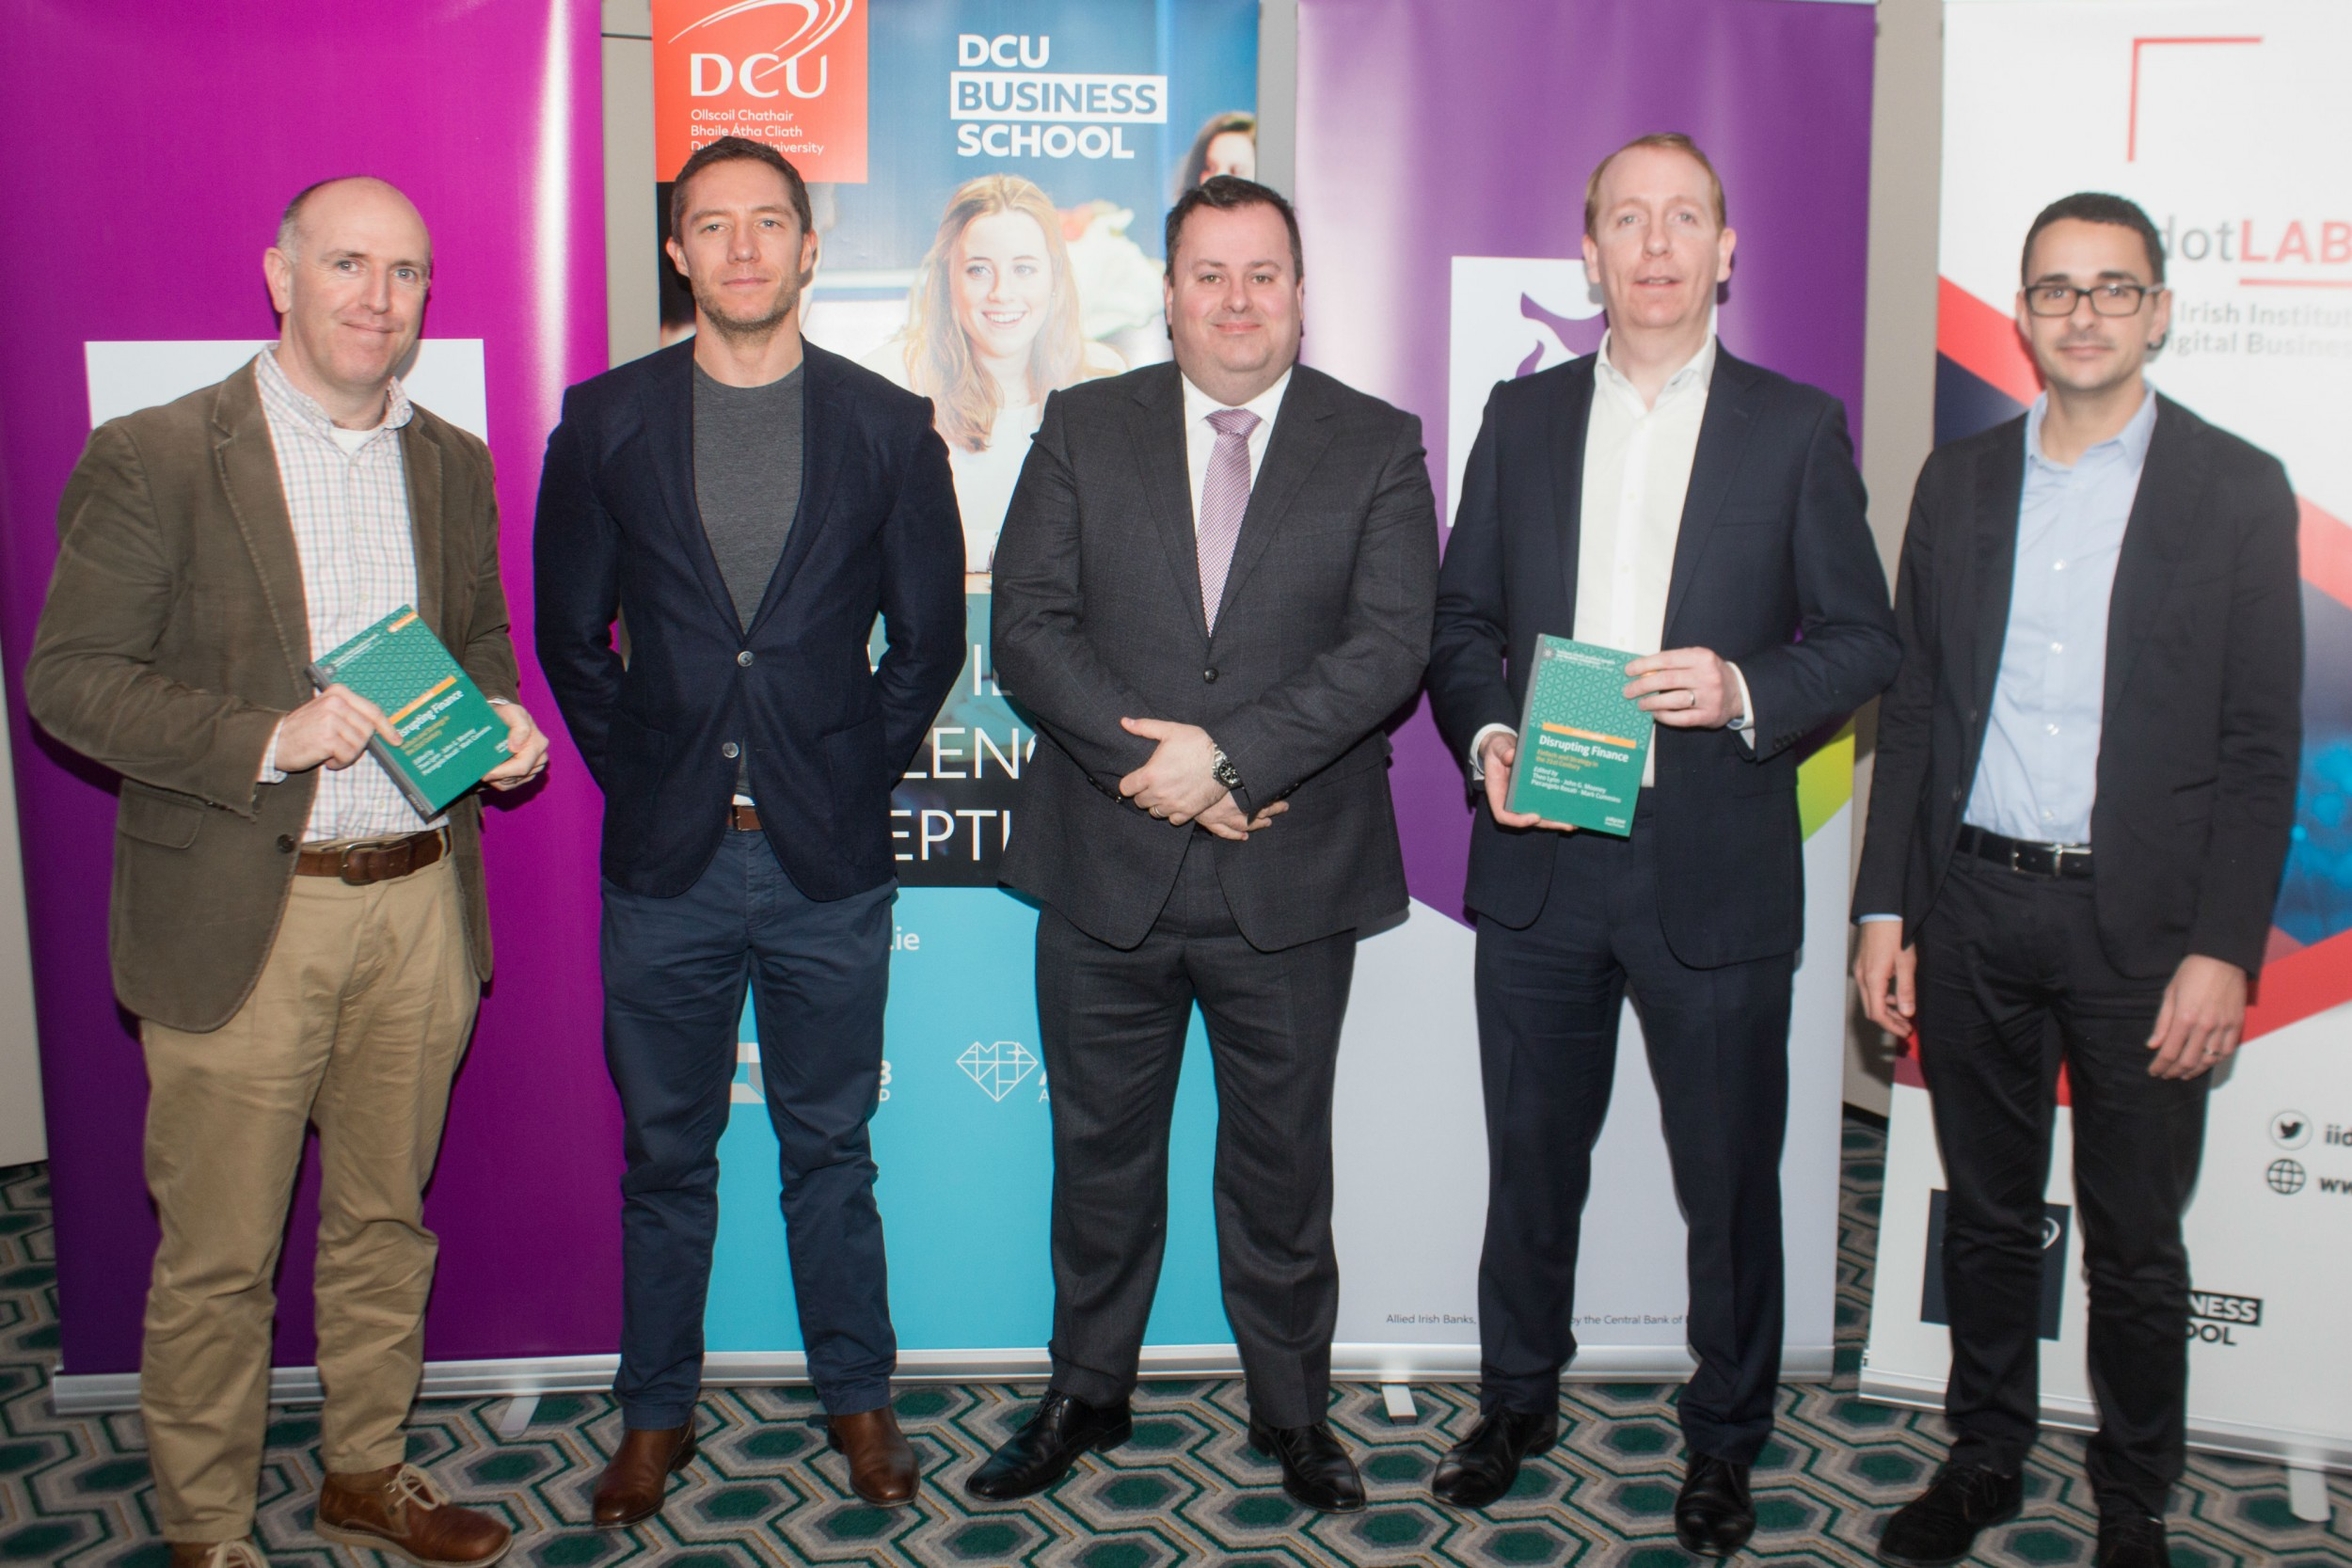 New open access book on how technology is disrupting financial services launched by DCU